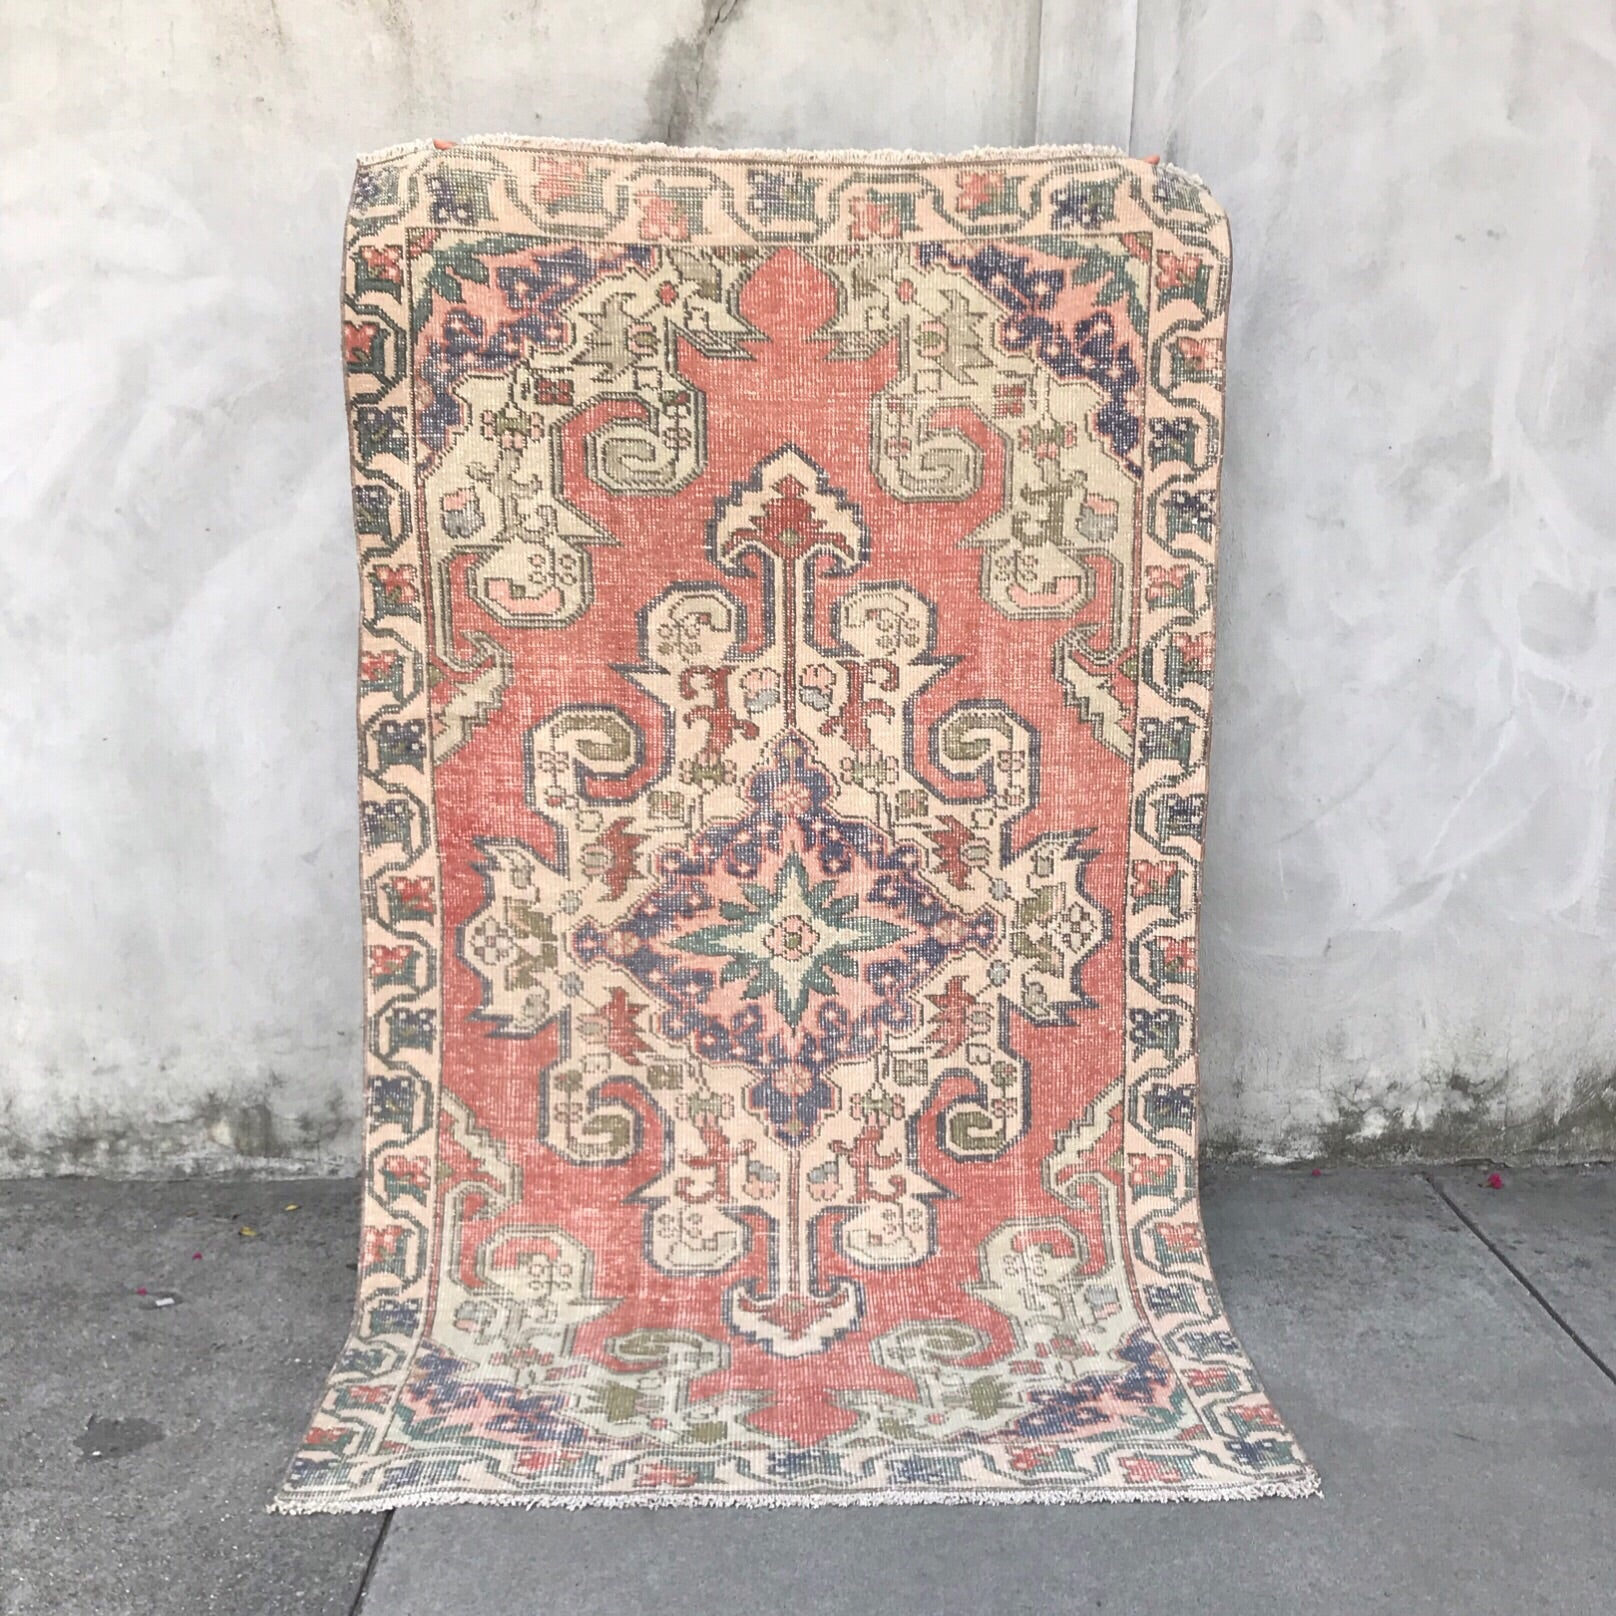 This avanoz handwoven vintage Turkish rug has an absolutely stunning pink medallion with an salmon peach background. 4'1x7'2